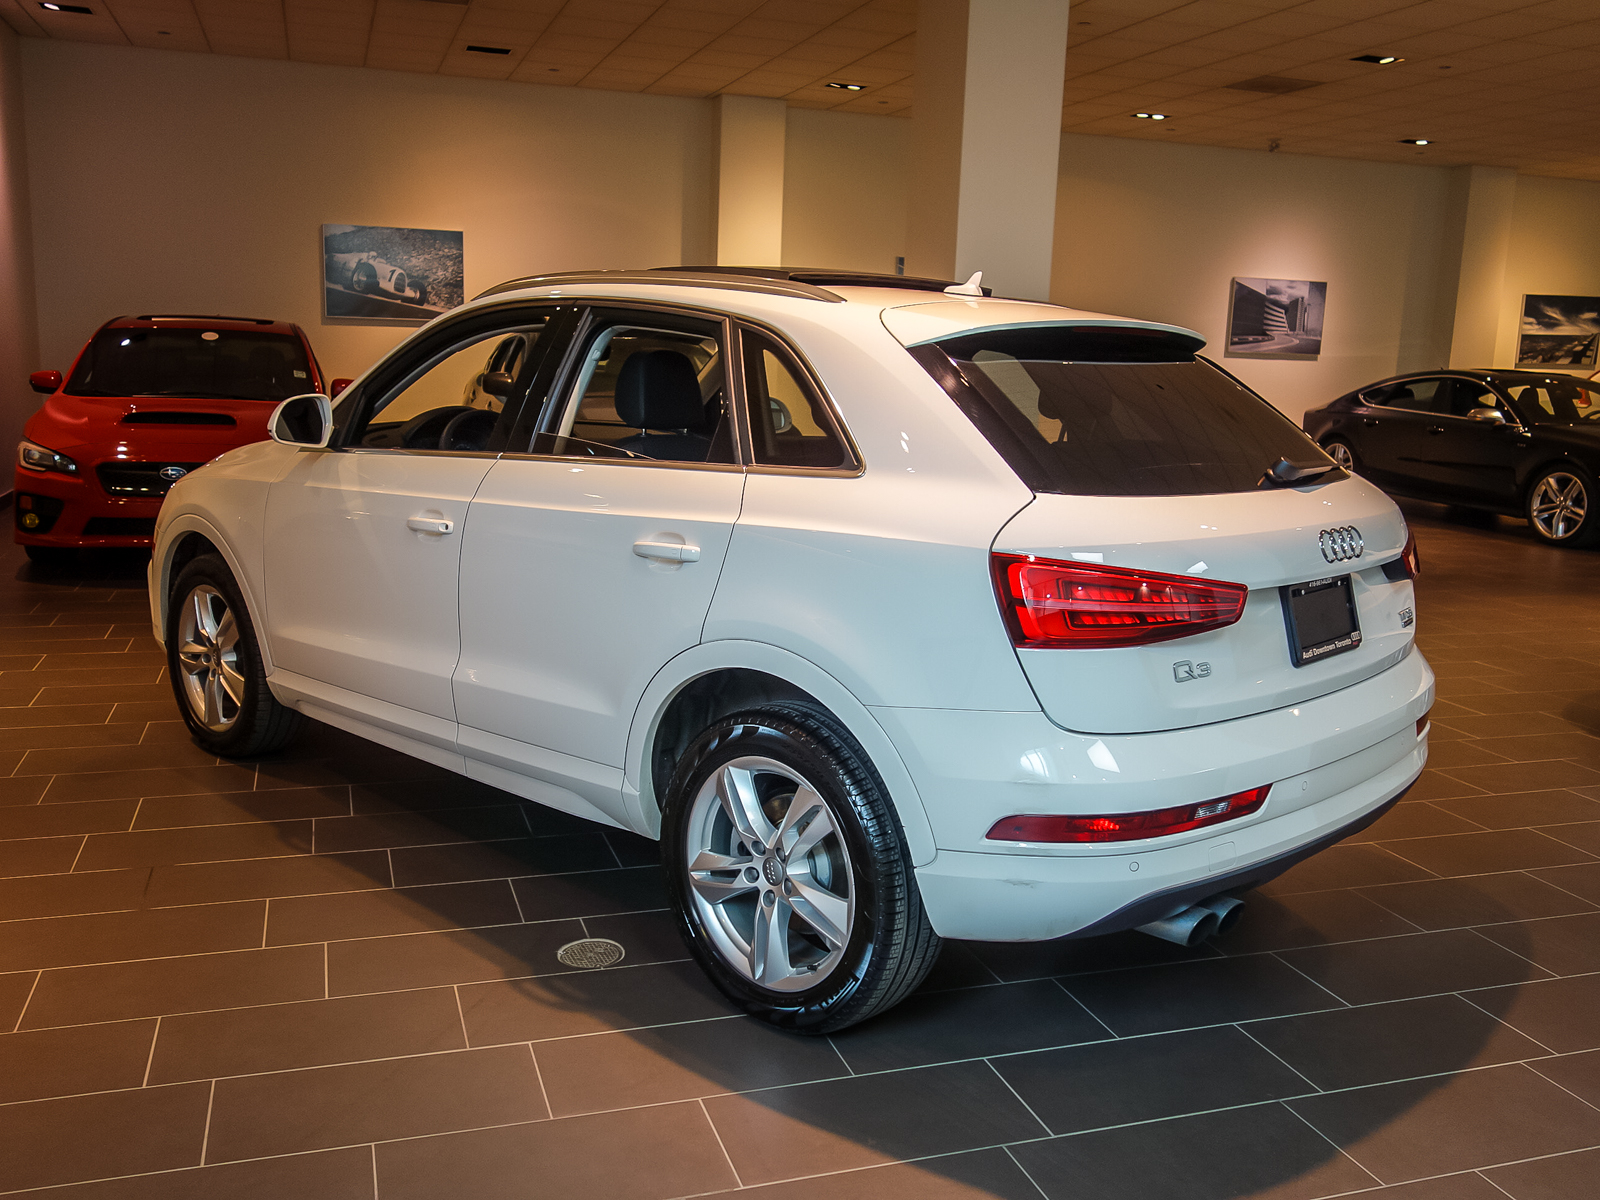 audi canada certified pre owned vehicle details 2016 audi q3 at audi downtown toronto. Black Bedroom Furniture Sets. Home Design Ideas